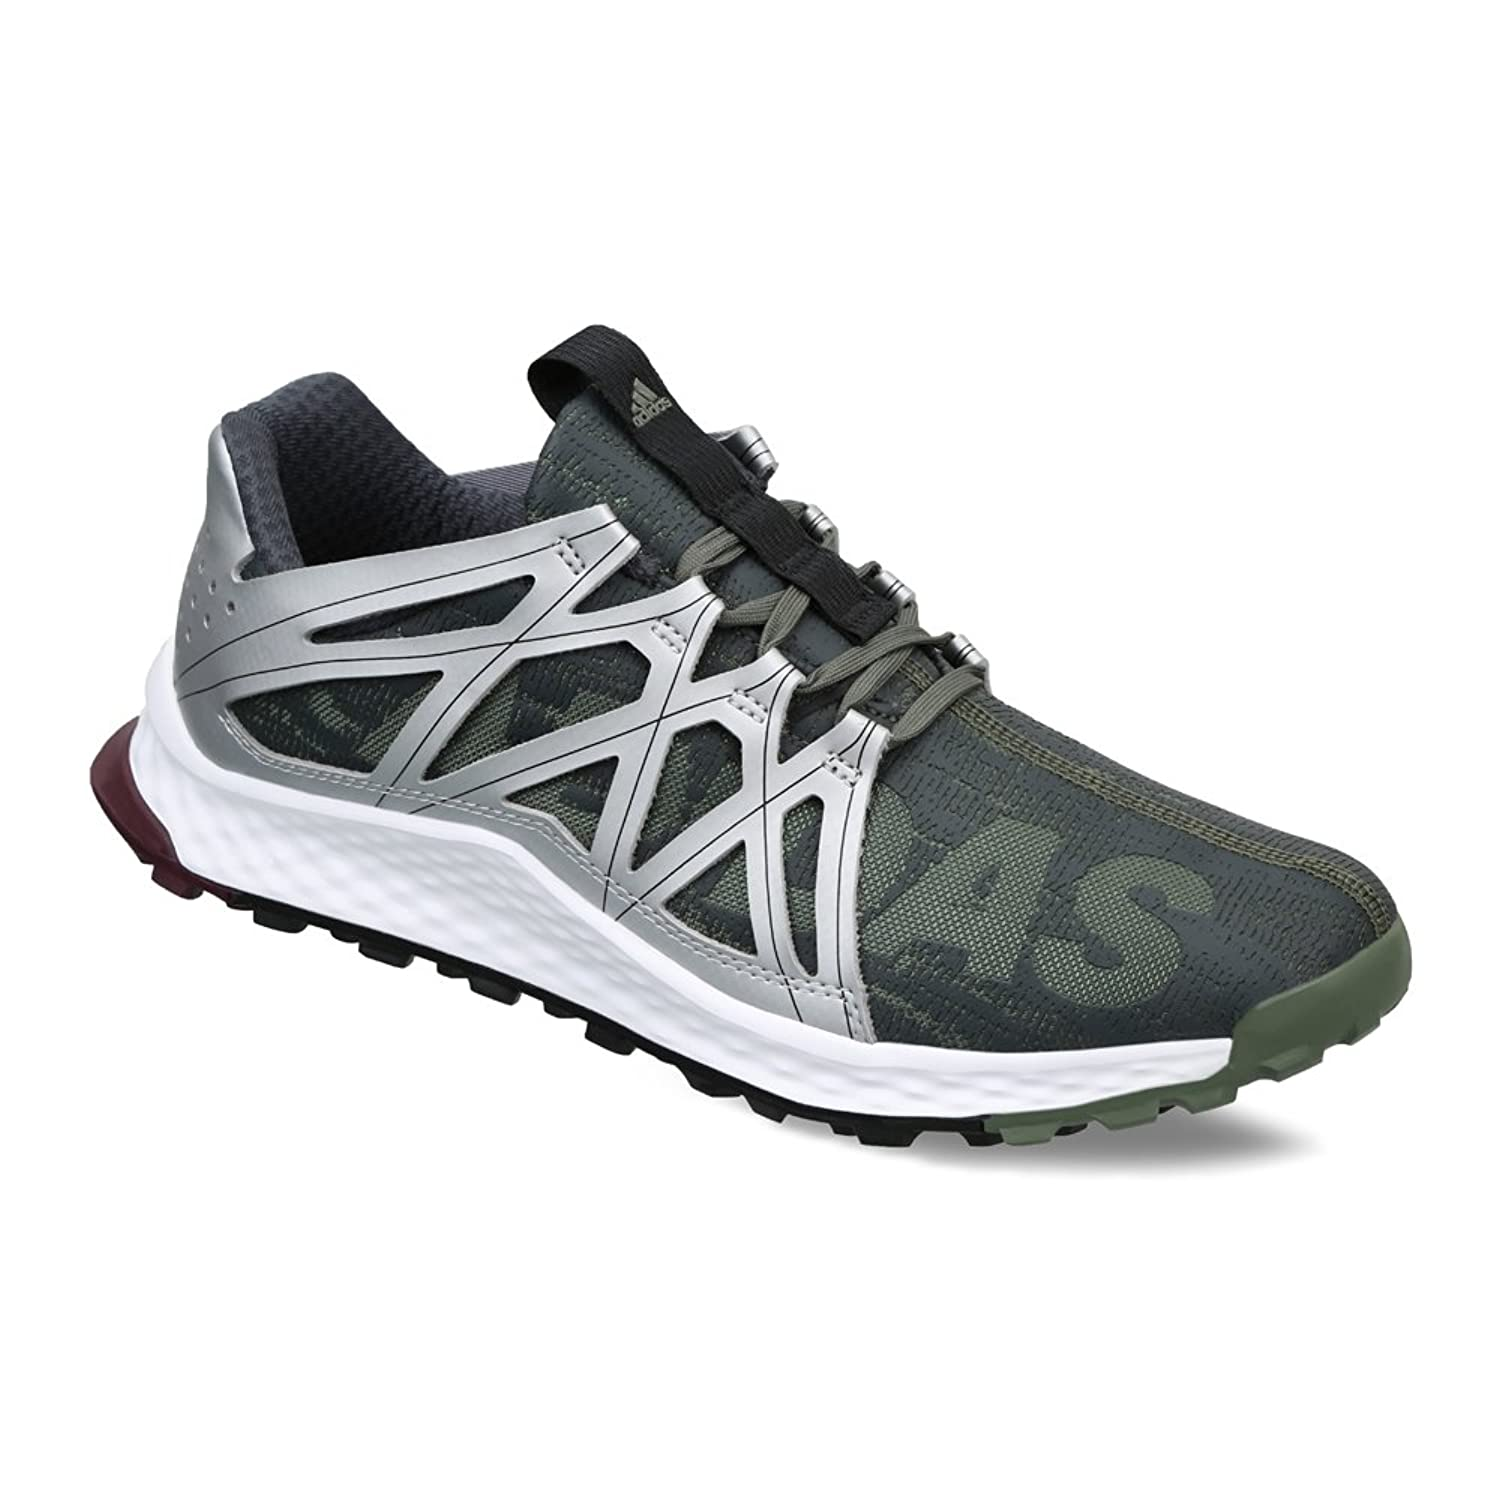 441b04ee220fd Adidas Men s Vigor Bounce M Running Shoes  Buy Online at Low Prices ...